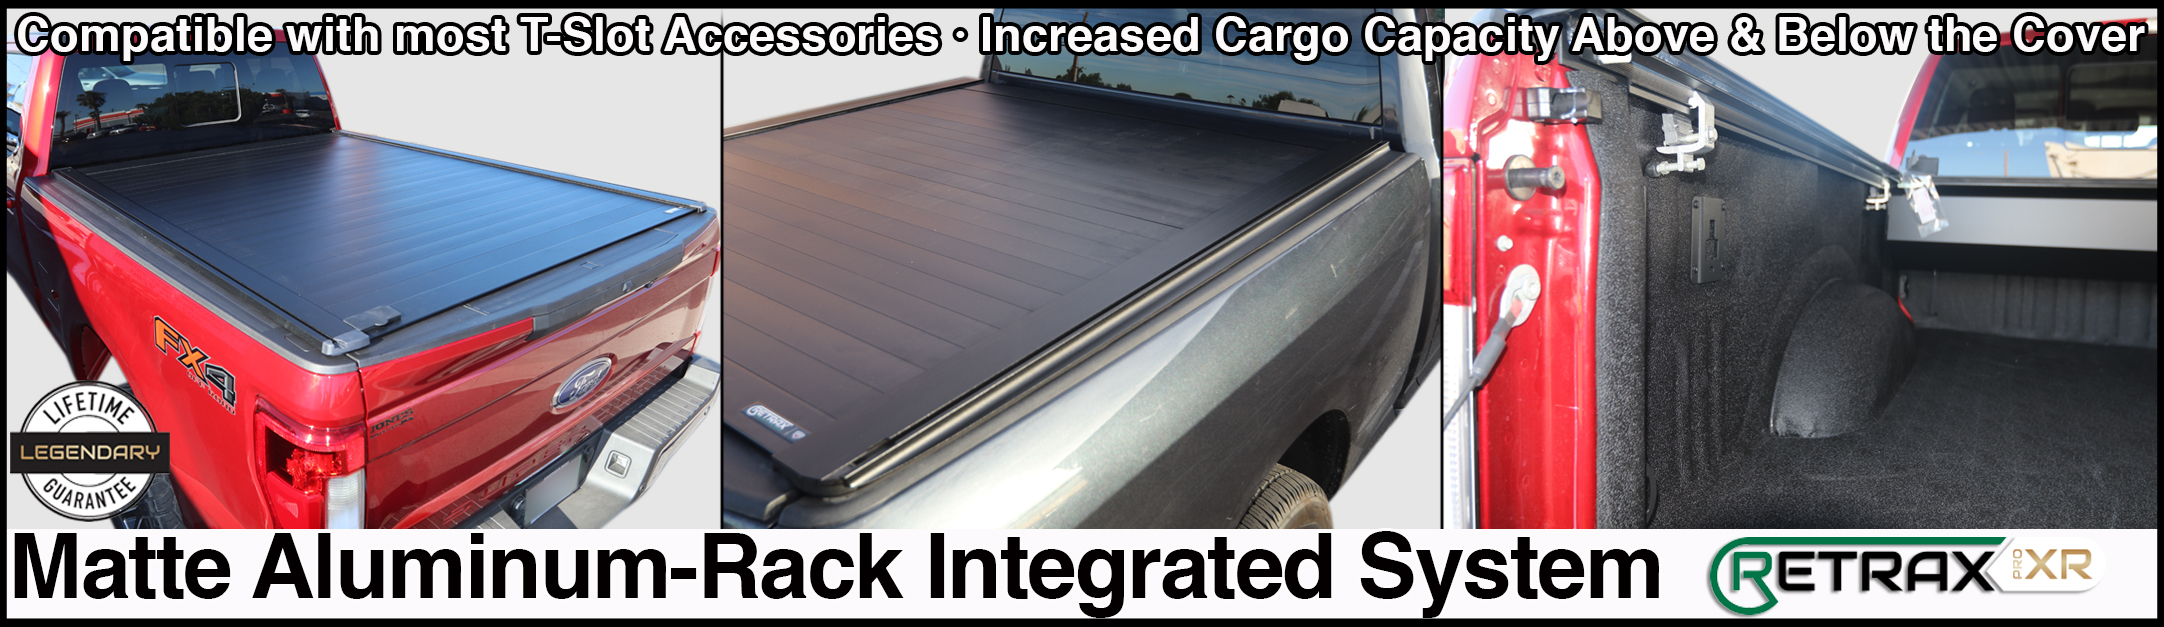 retraxpro xr retractable rack tonneau cover